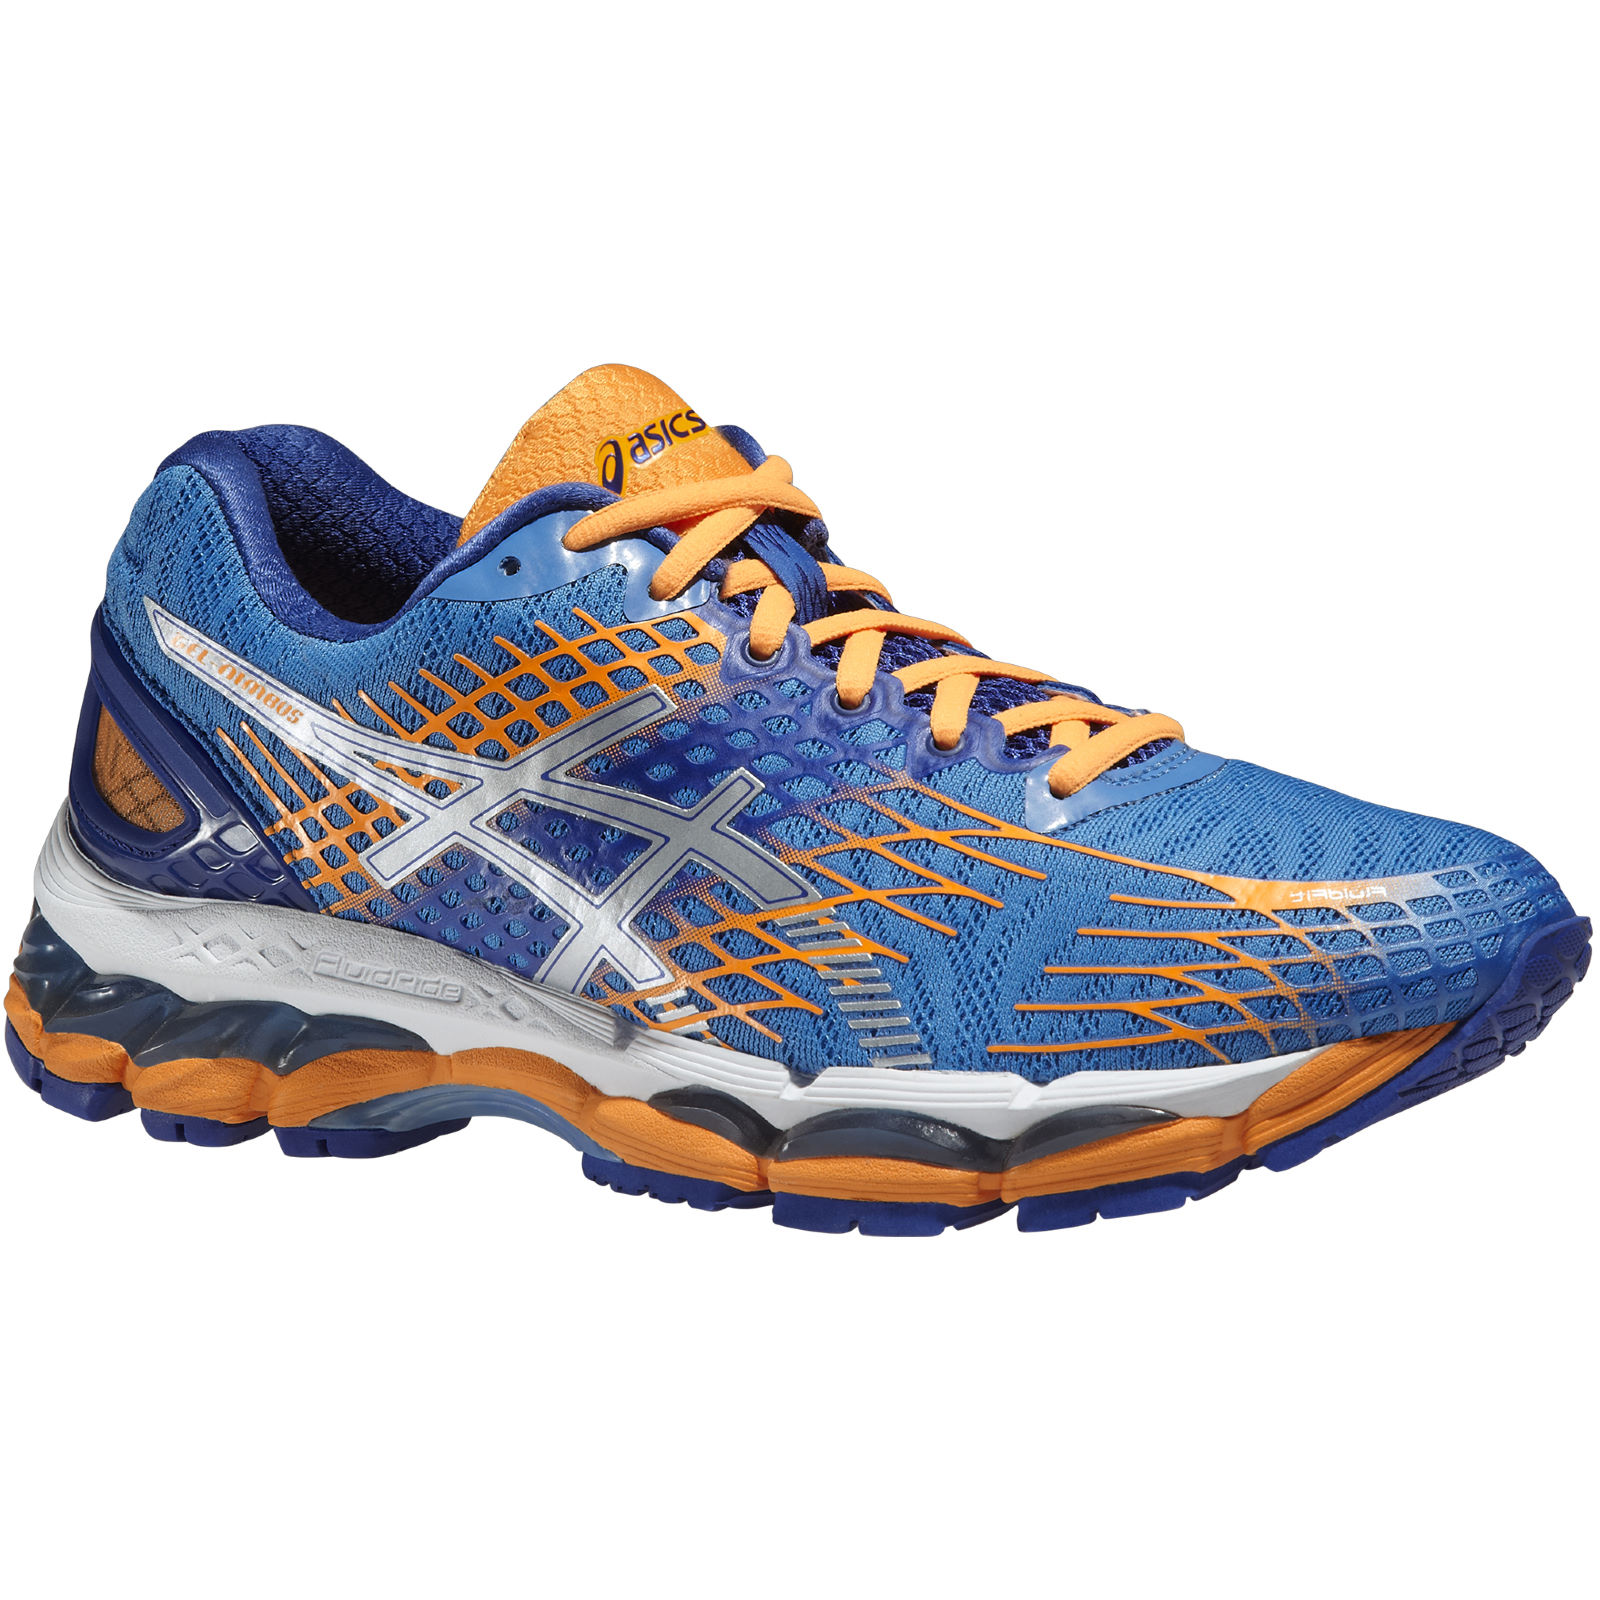 wiggle asics women 39 s gel nimbus 17 shoes ss15 cushion running shoes. Black Bedroom Furniture Sets. Home Design Ideas